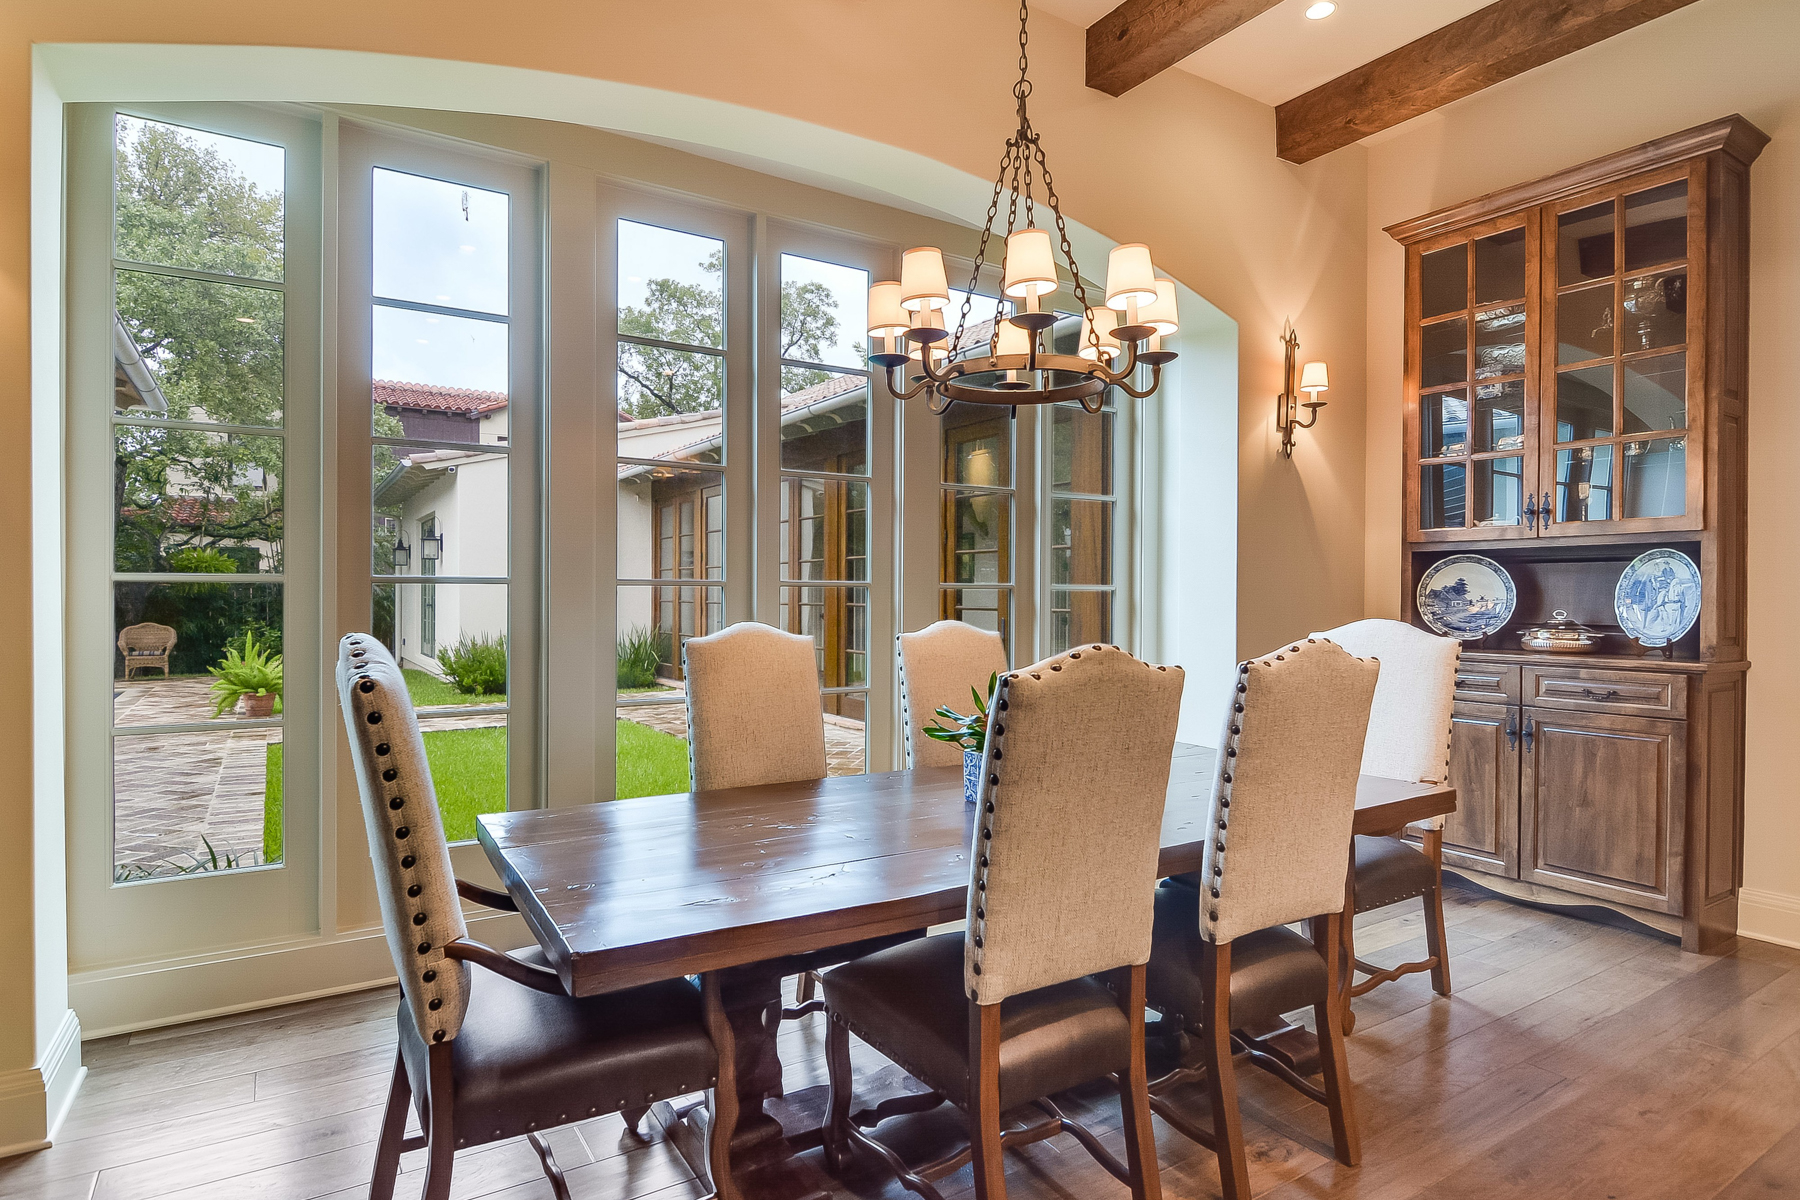 Additional photo for property listing at Gorgeous Home in Alamo Heights 865 Estes Ave San Antonio, Texas 78209 United States